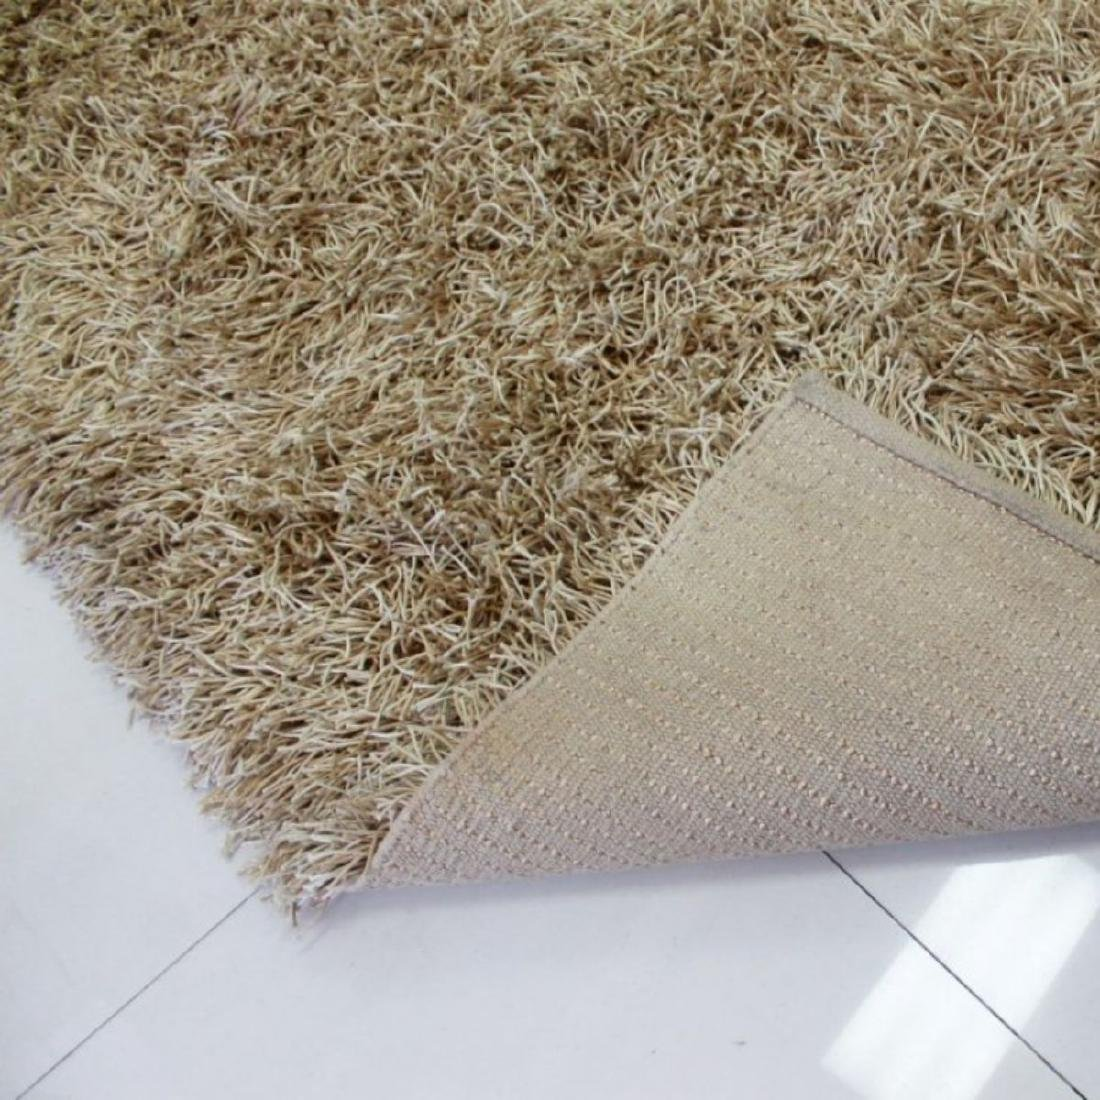 GOLD HAND KNOTTED AREA RUG - 5